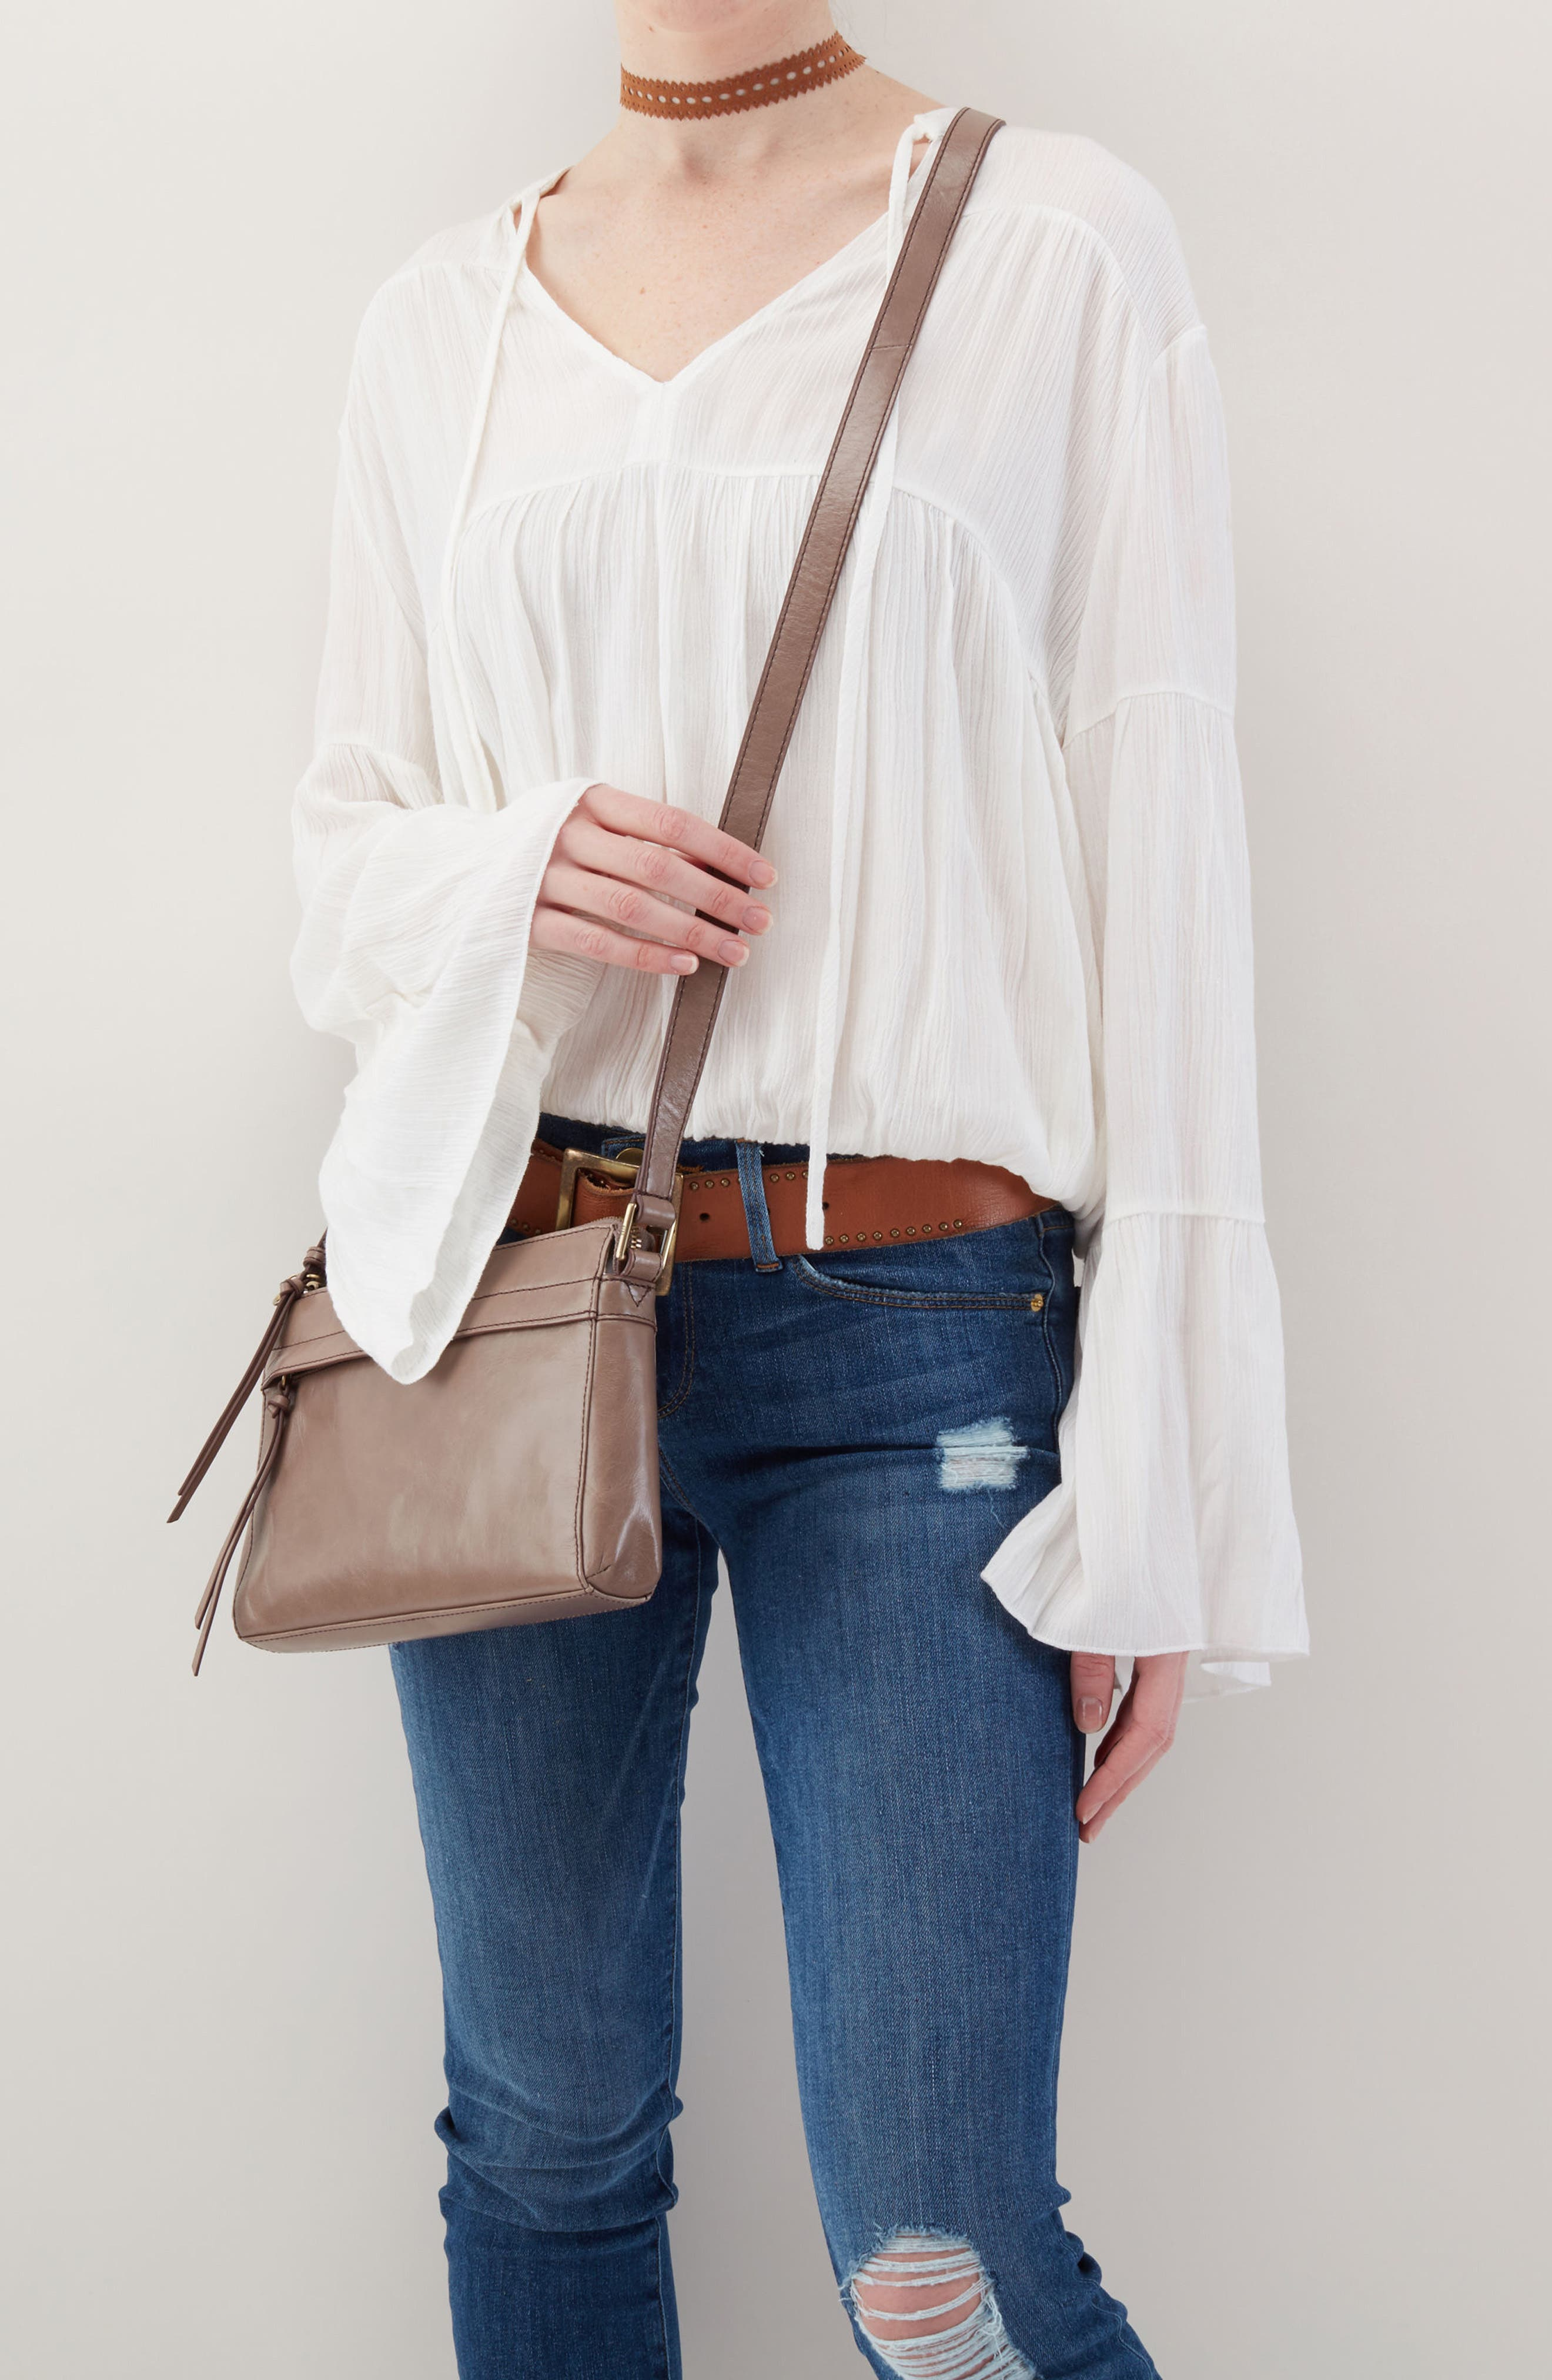 Tobey Leather Crossbody Bag,                             Alternate thumbnail 2, color,                             037